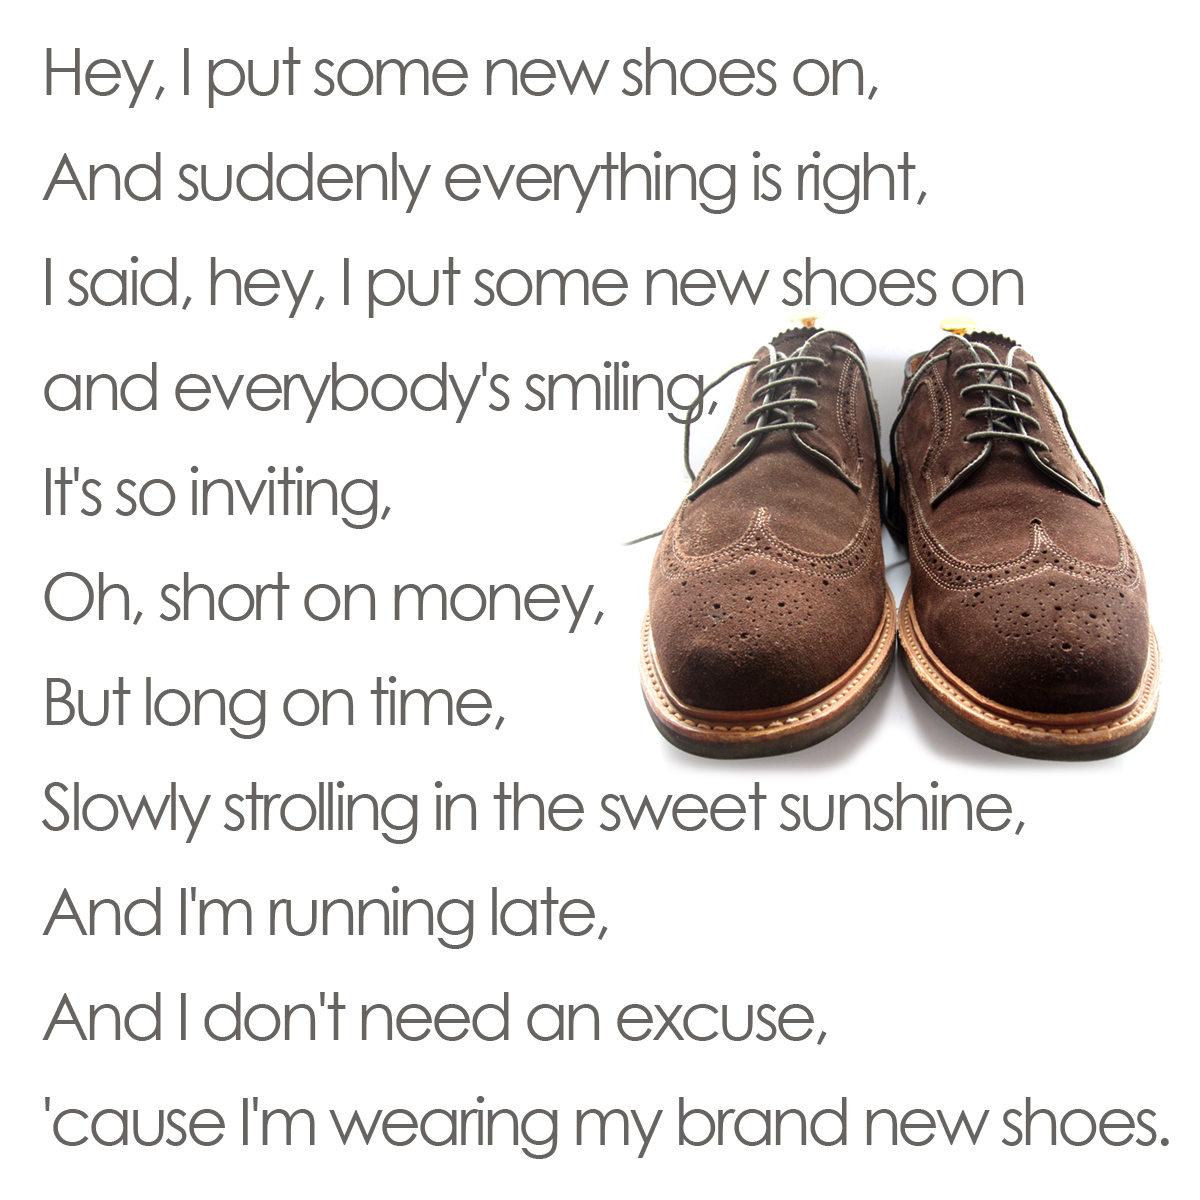 New shoes paulo nutini its impossible not to dance to this new shoes paulo nutini its impossible not to dance to this song d hexwebz Choice Image